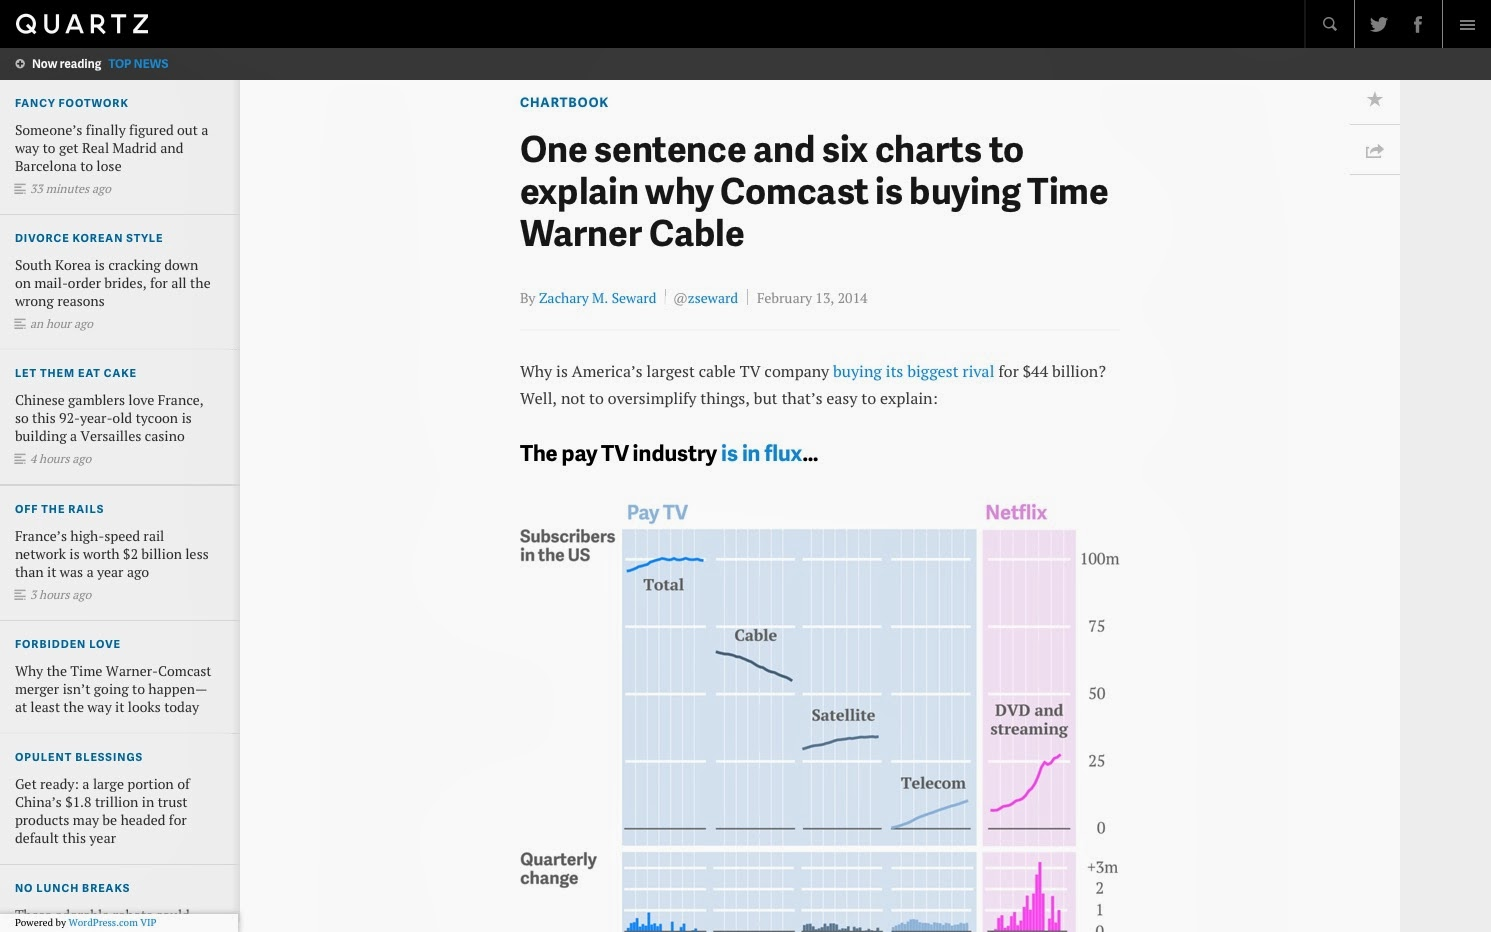 Una frase e sei grafici per spiegare perchè Comcast compra Time Warner Cable